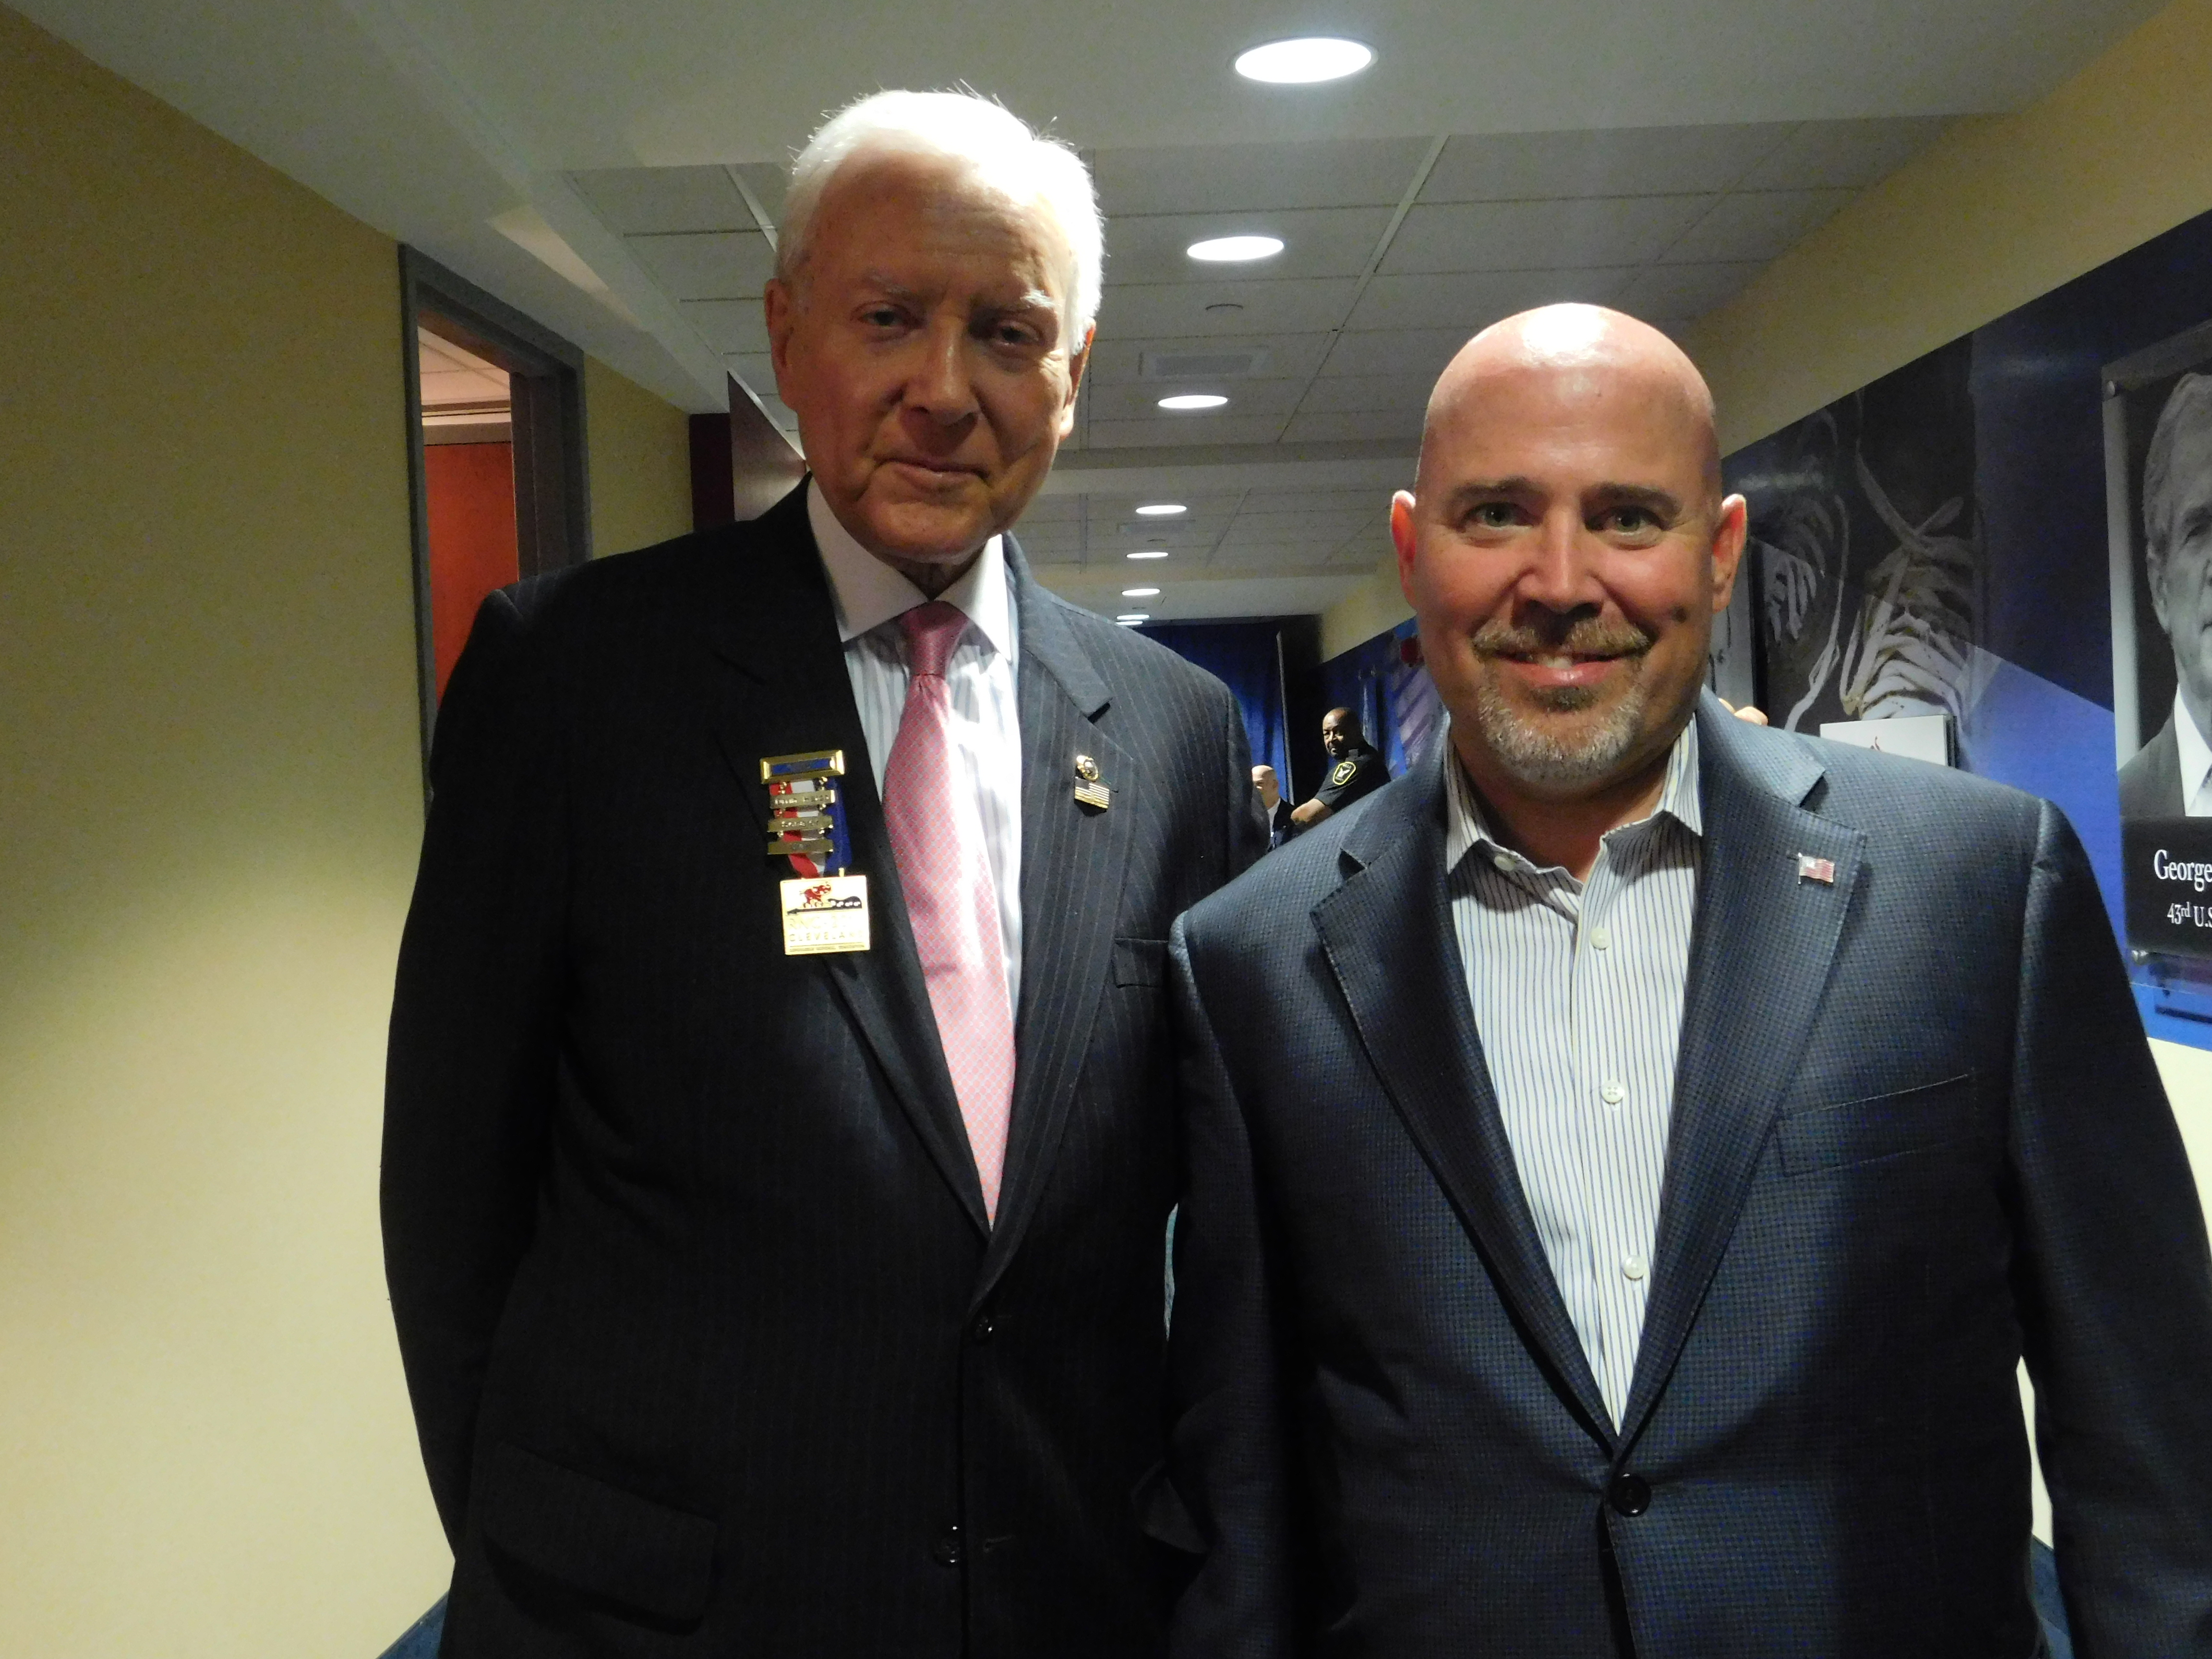 MacArthur and Hatch at the RNC.